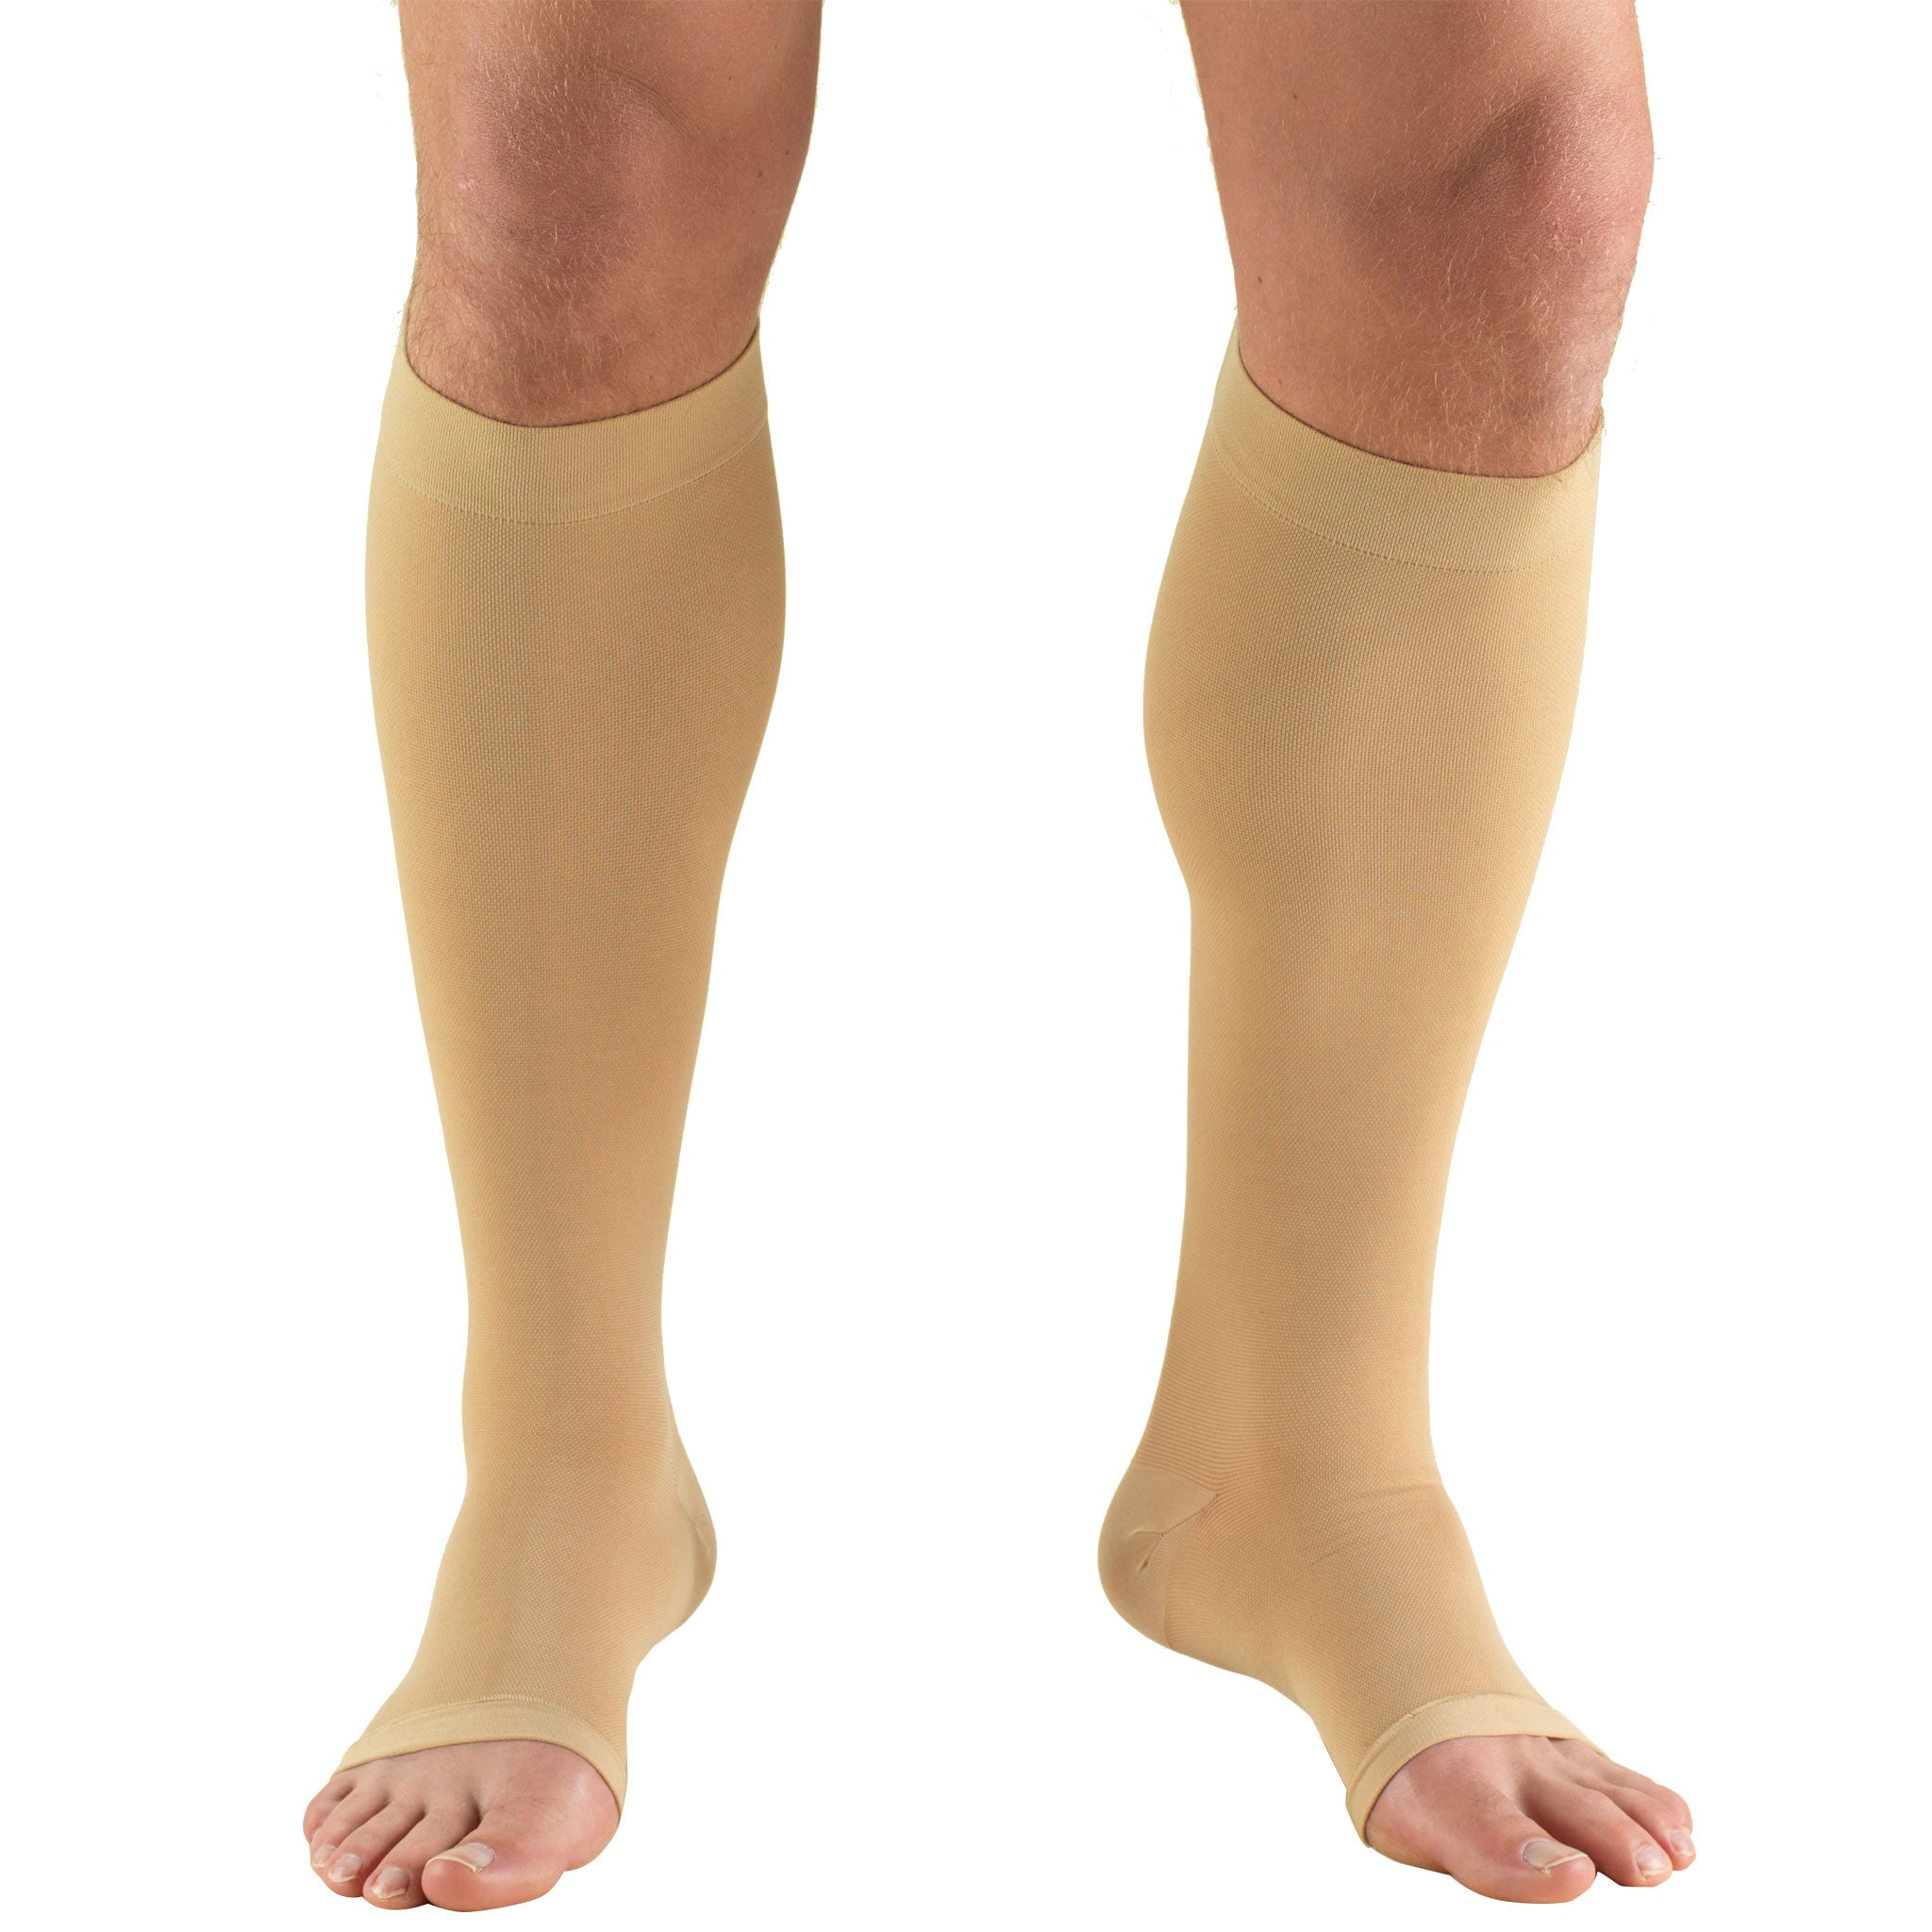 0865 Knee High Open Toe Beige Medical Stockings